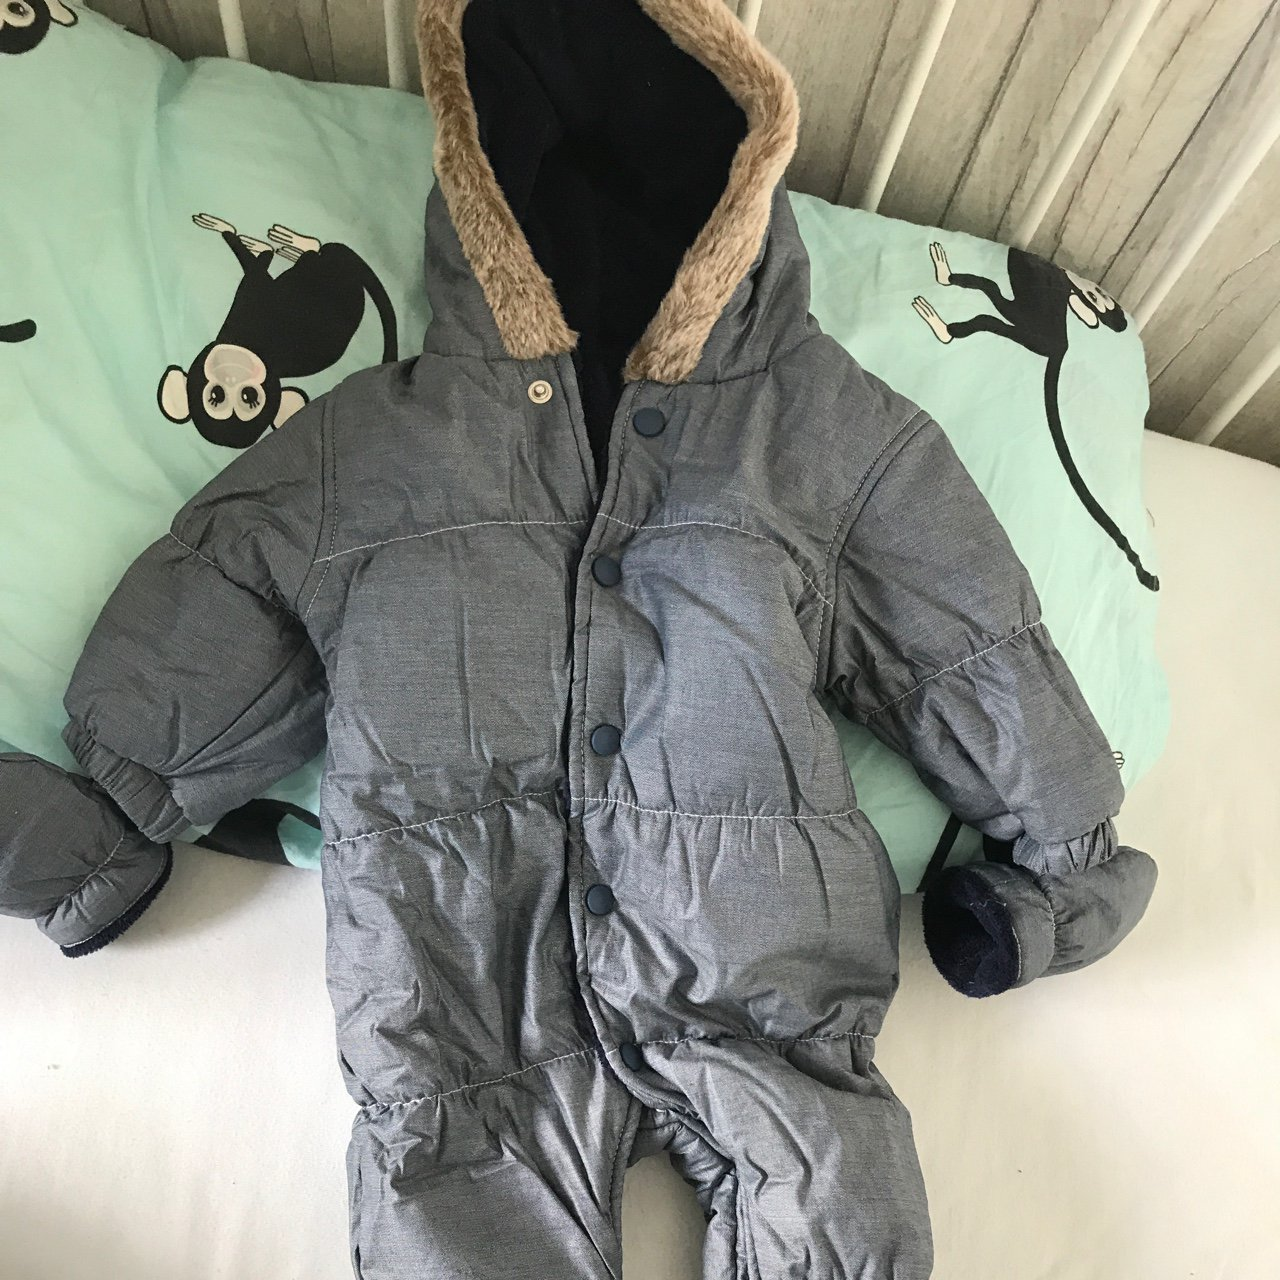 e55fe9630df7 Next snow suit new without tags (sorry for the rubbish pic) - Depop